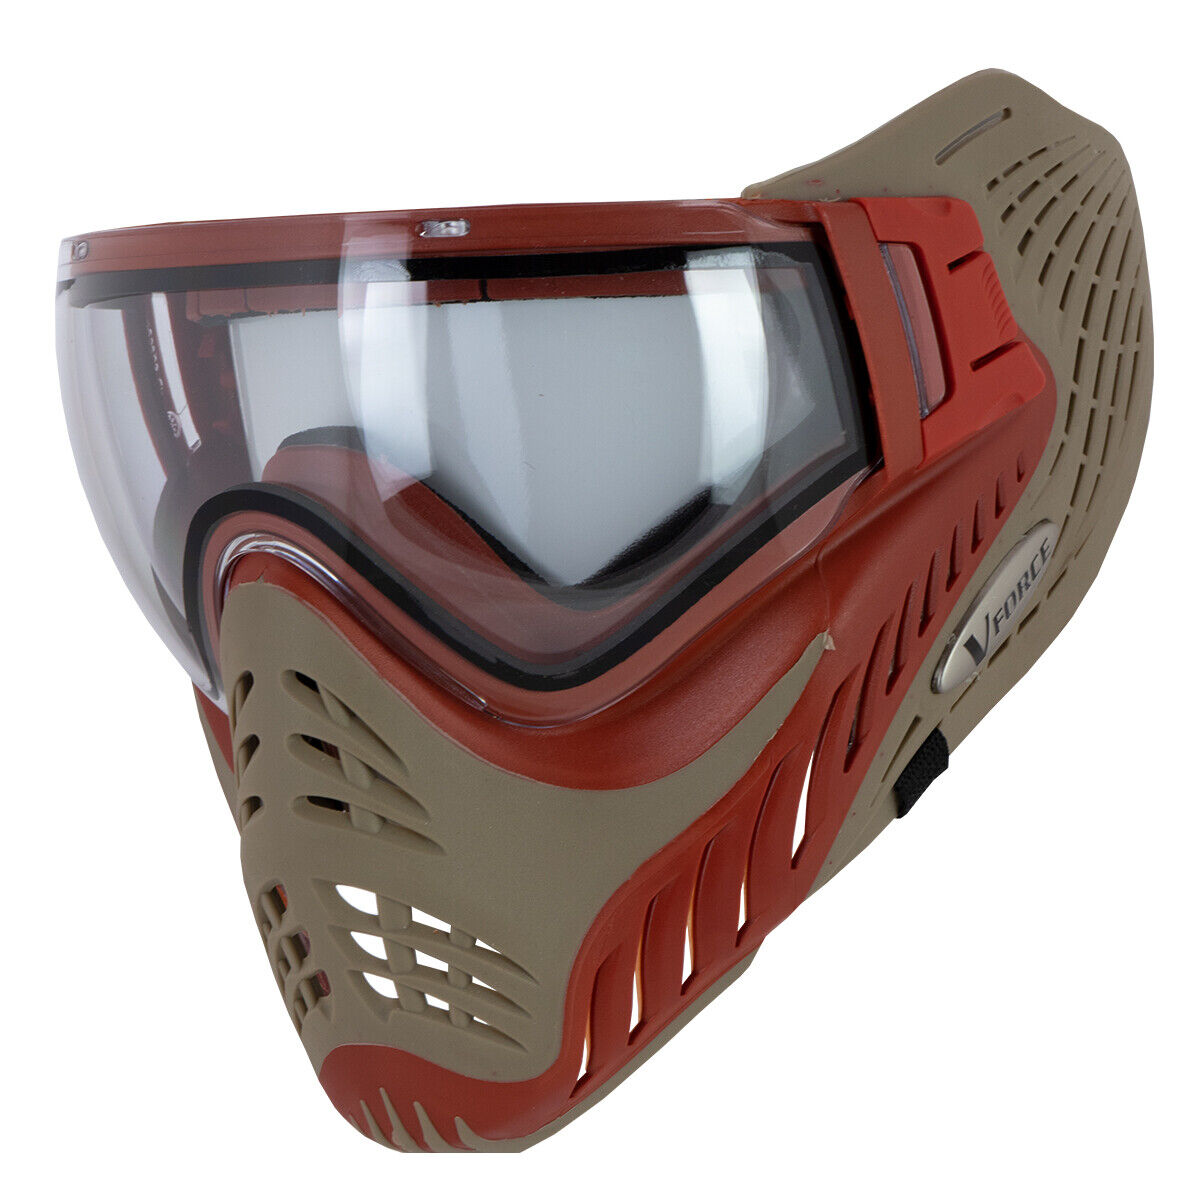 VForce Profiler Paintball Goggles - Sunfire - Red   Tan